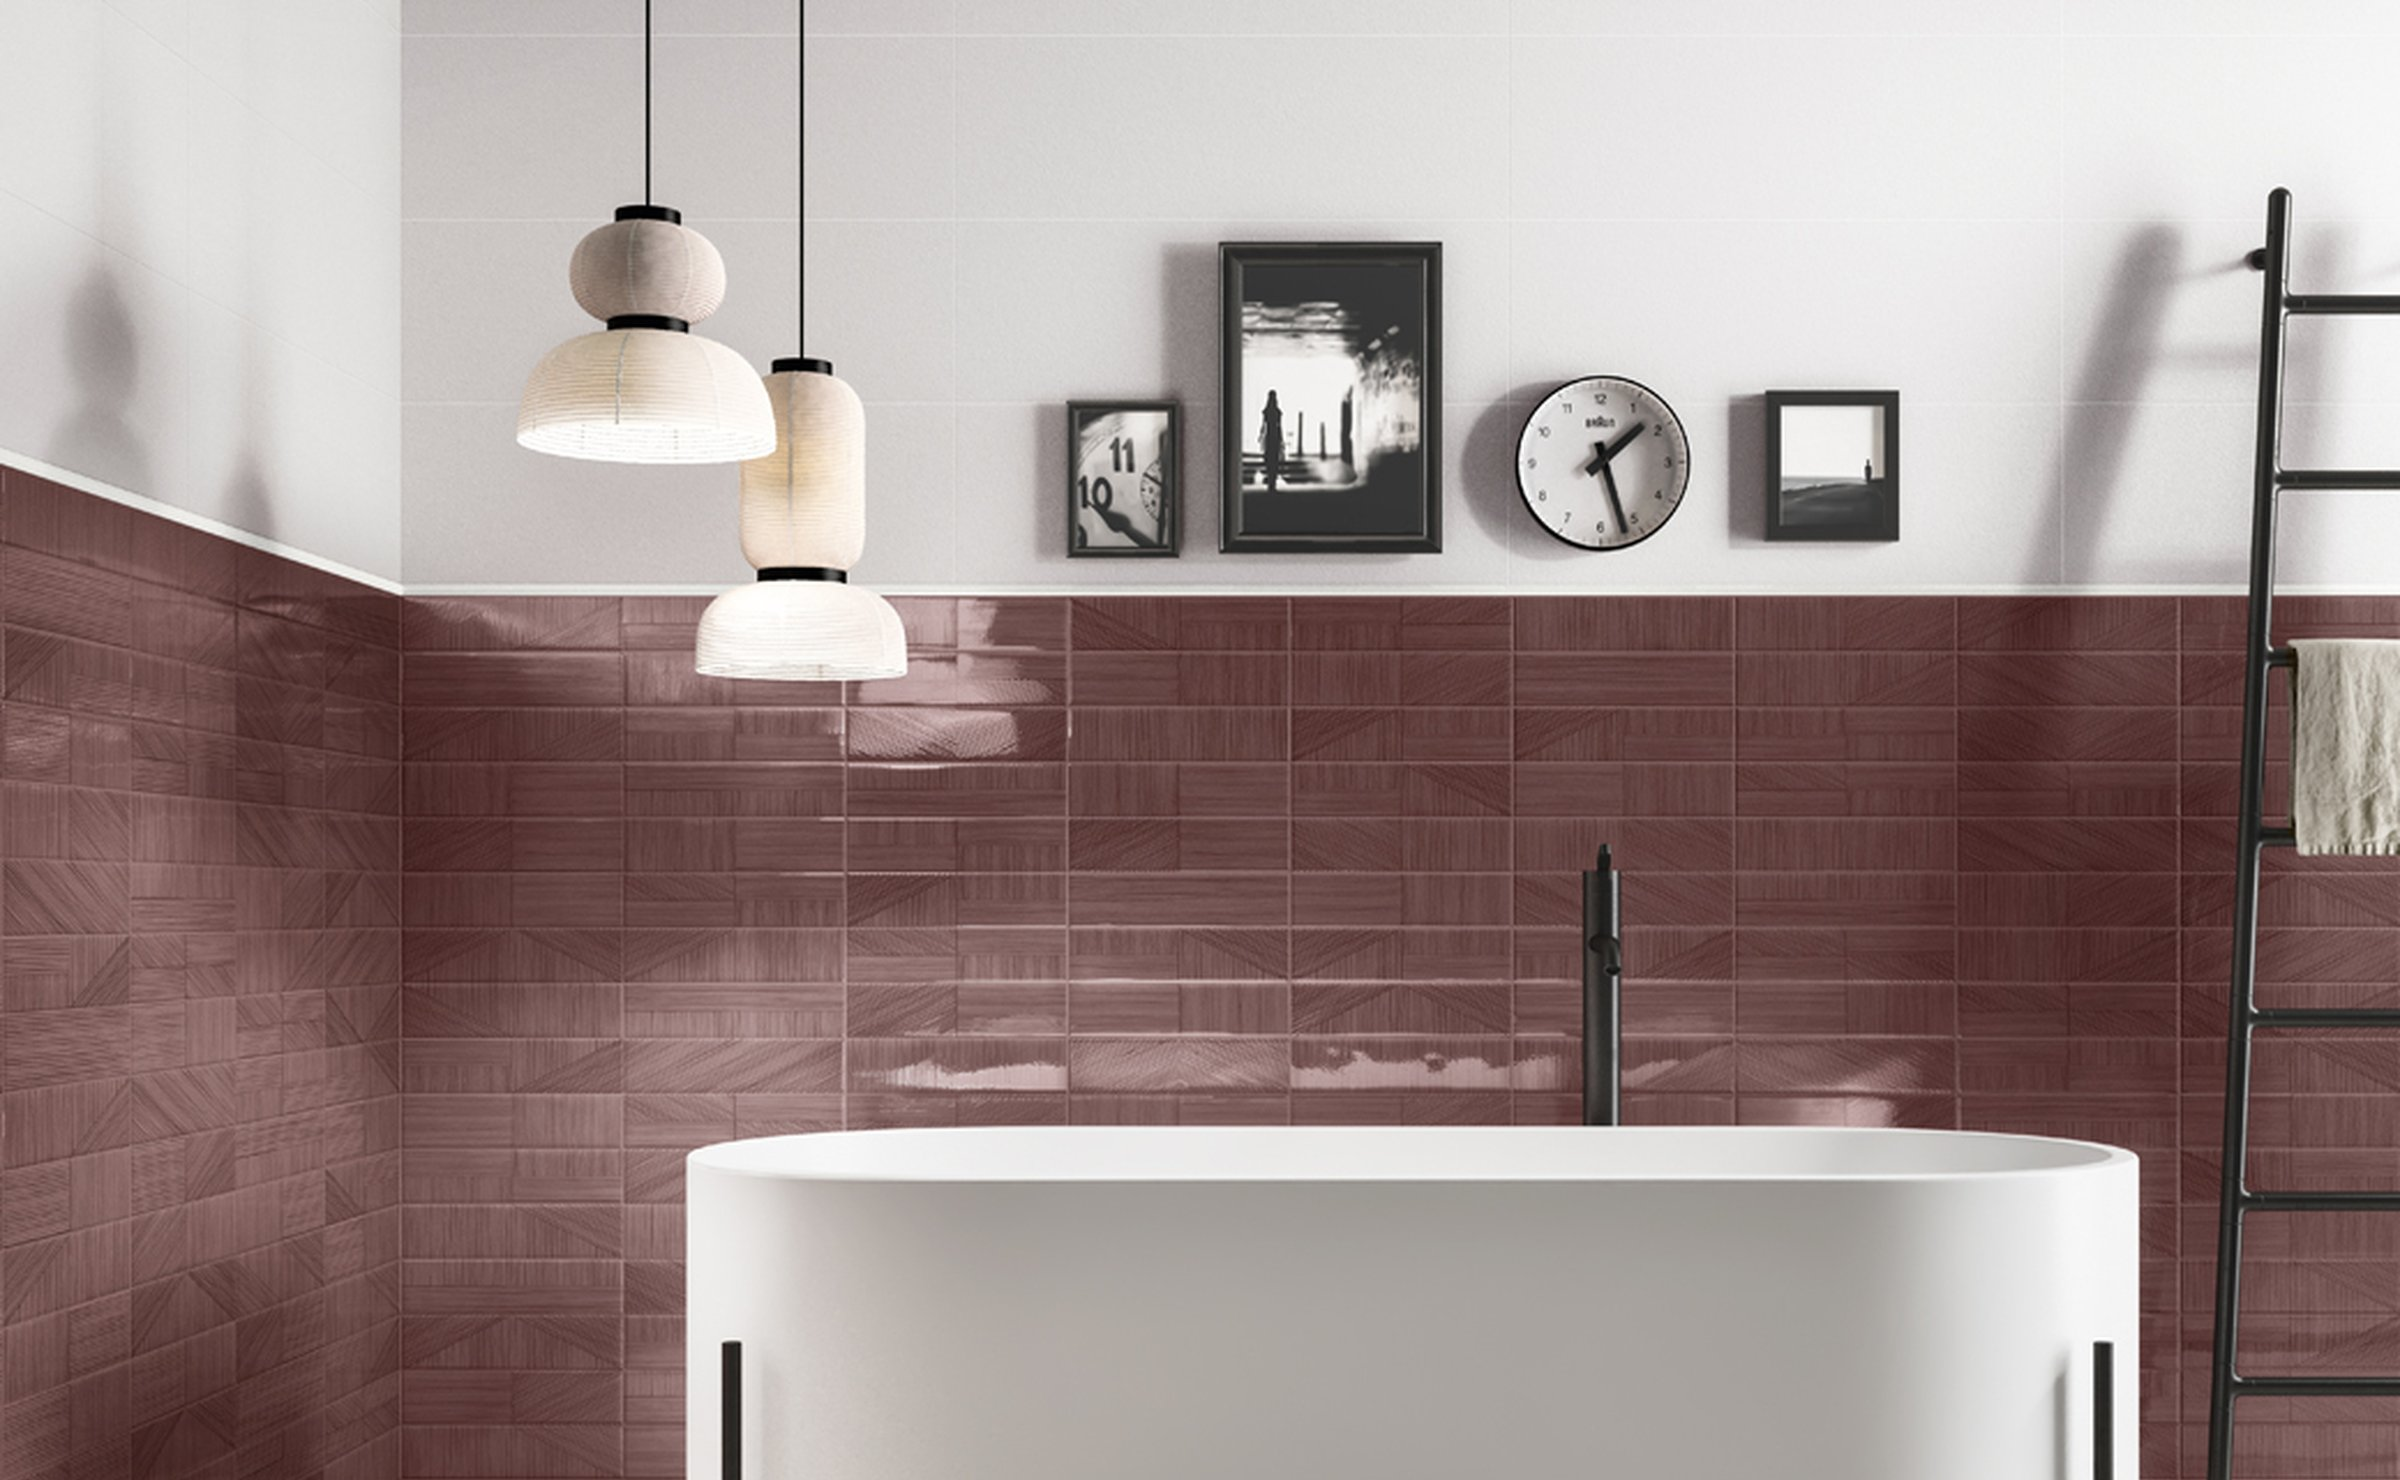 Decorline: decorated tiles